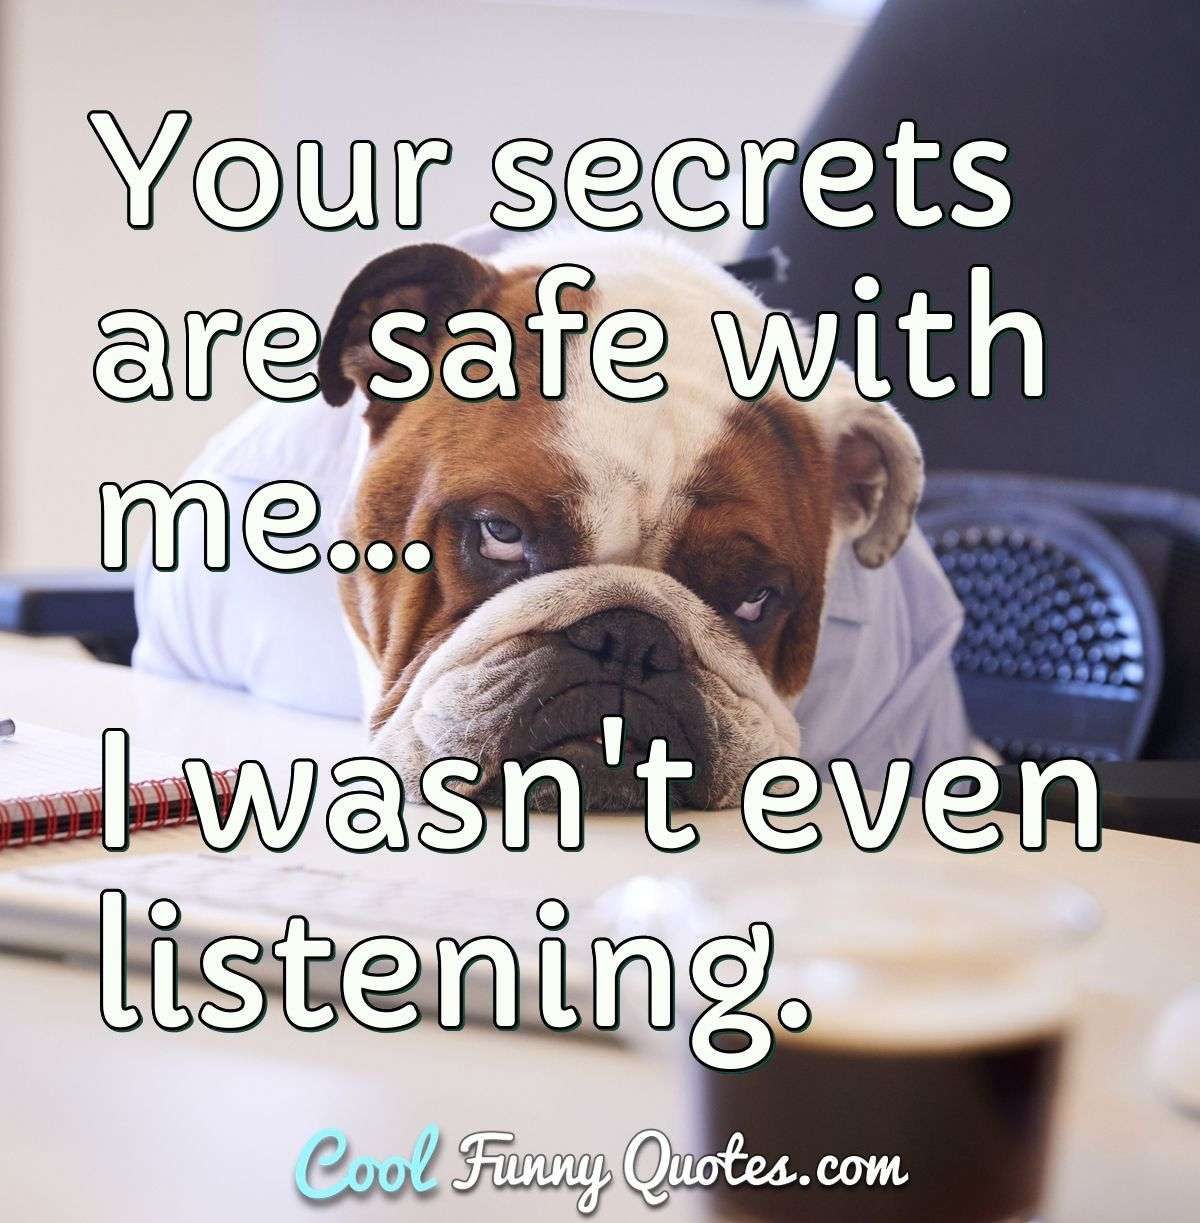 Your secrets are safe with me... I wasn't even listening. - Anonymous